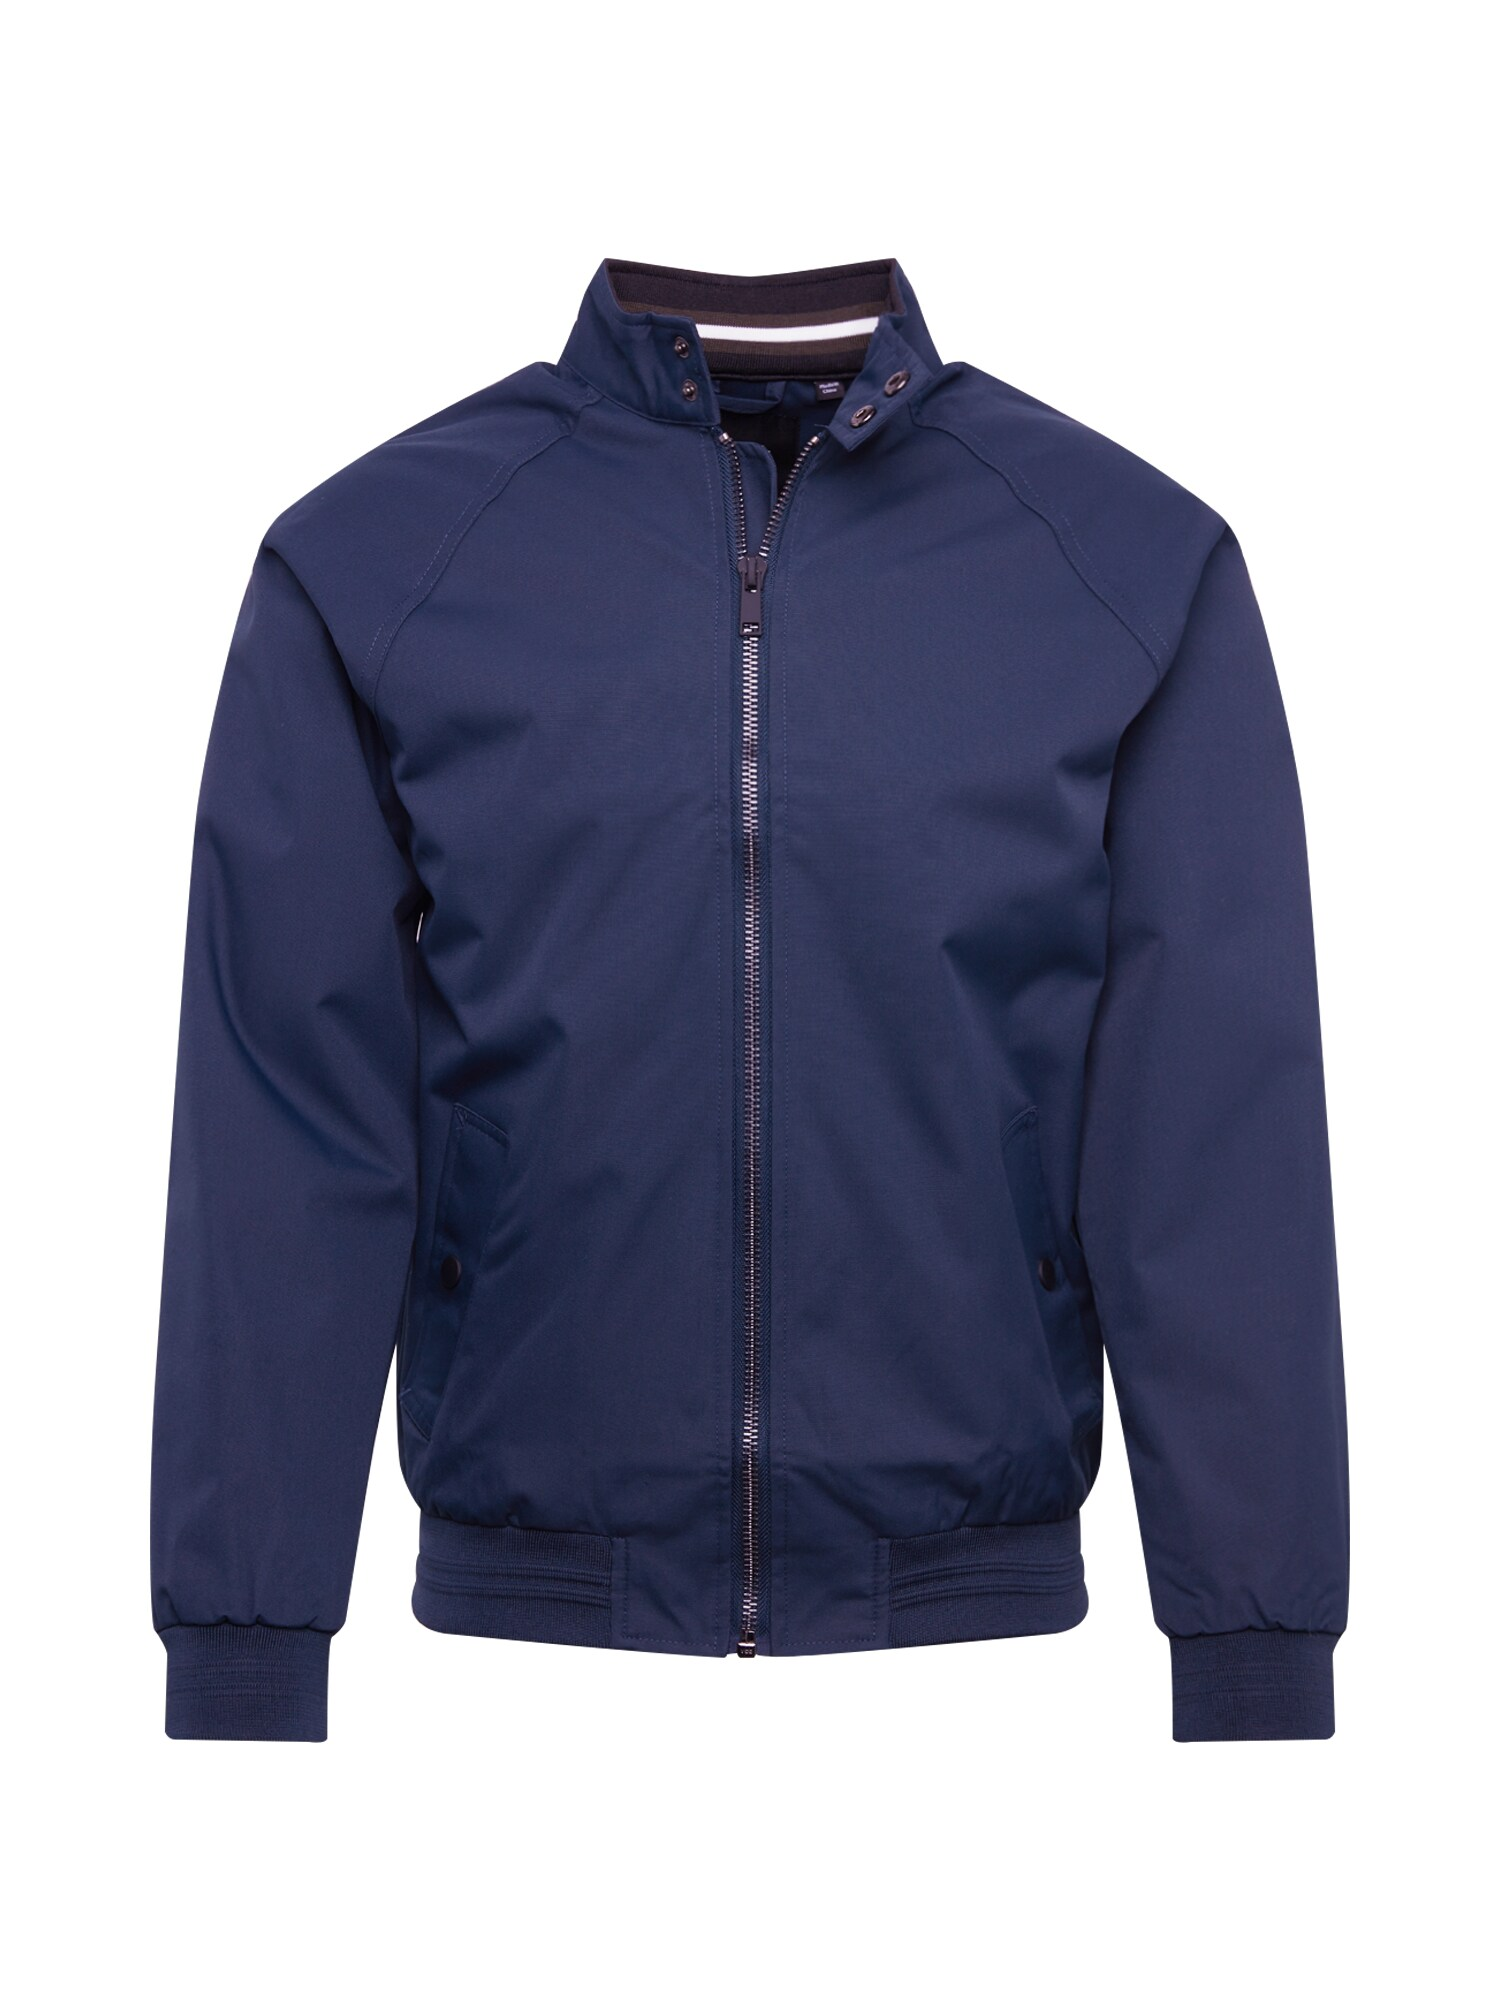 BURTON MENSWEAR LONDON Přechodná bunda navy core harrington all námořnická modř Burton Menswear London